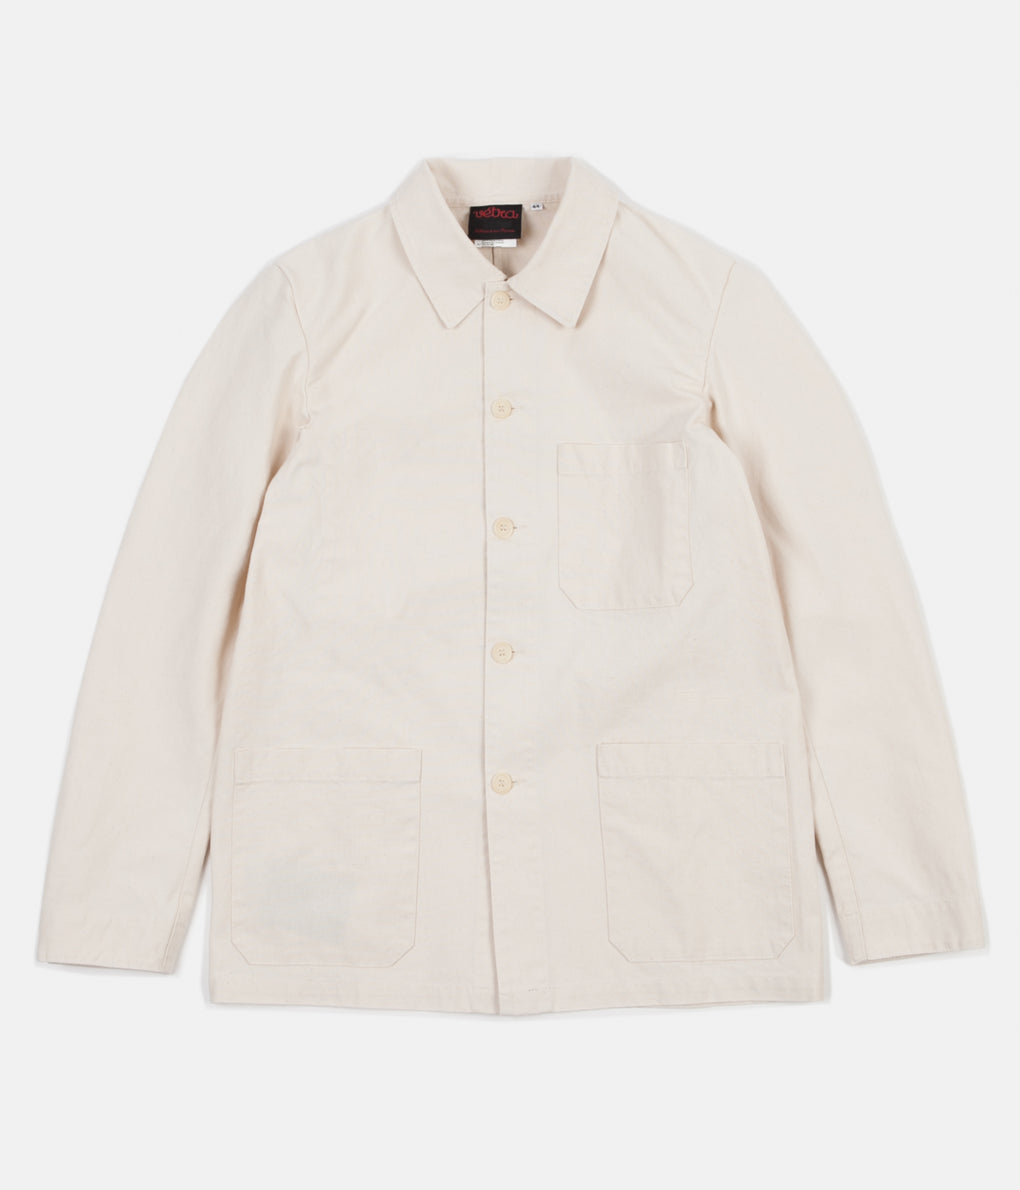 Vetra 2A Workwear Jacket - Natural